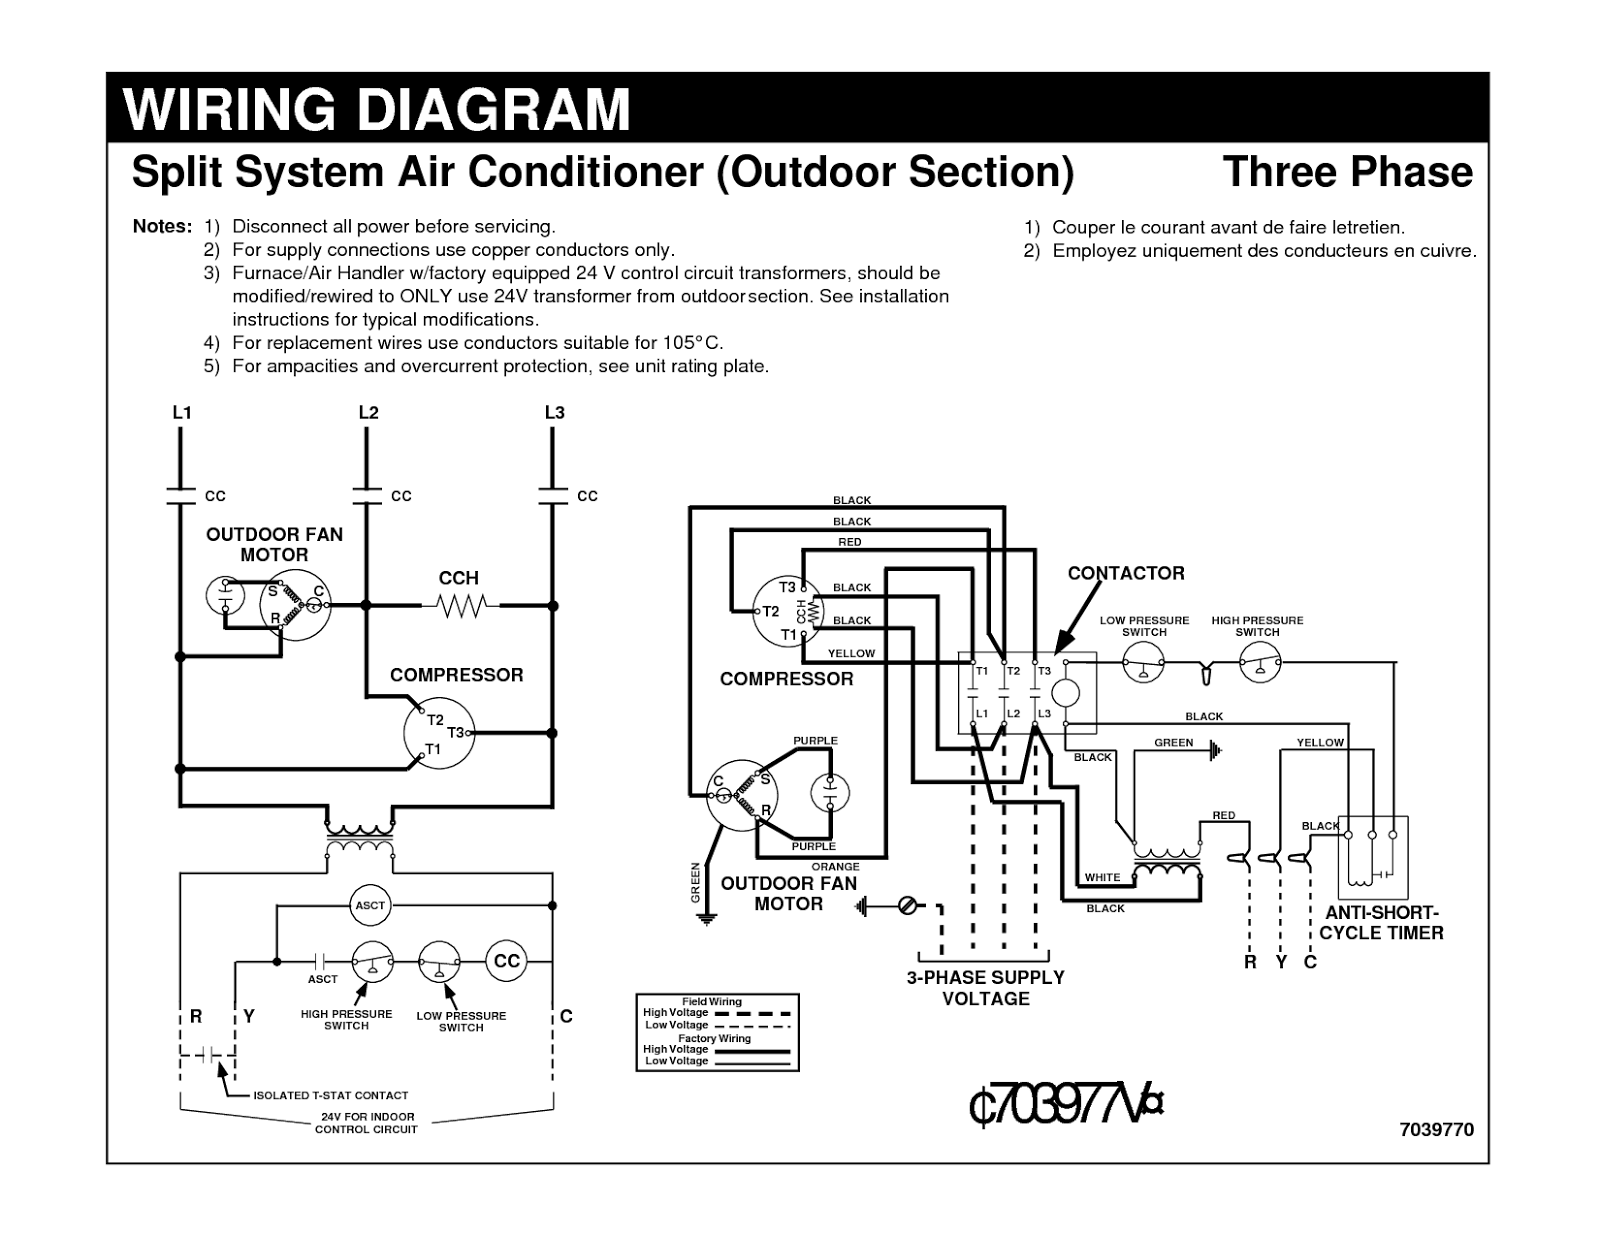 Schematic Wiring Diagrams Worksheet And Diagram Yamaha Virago 750 Usa Ac Pictures U2022 Rh Mapavick Co Uk 84